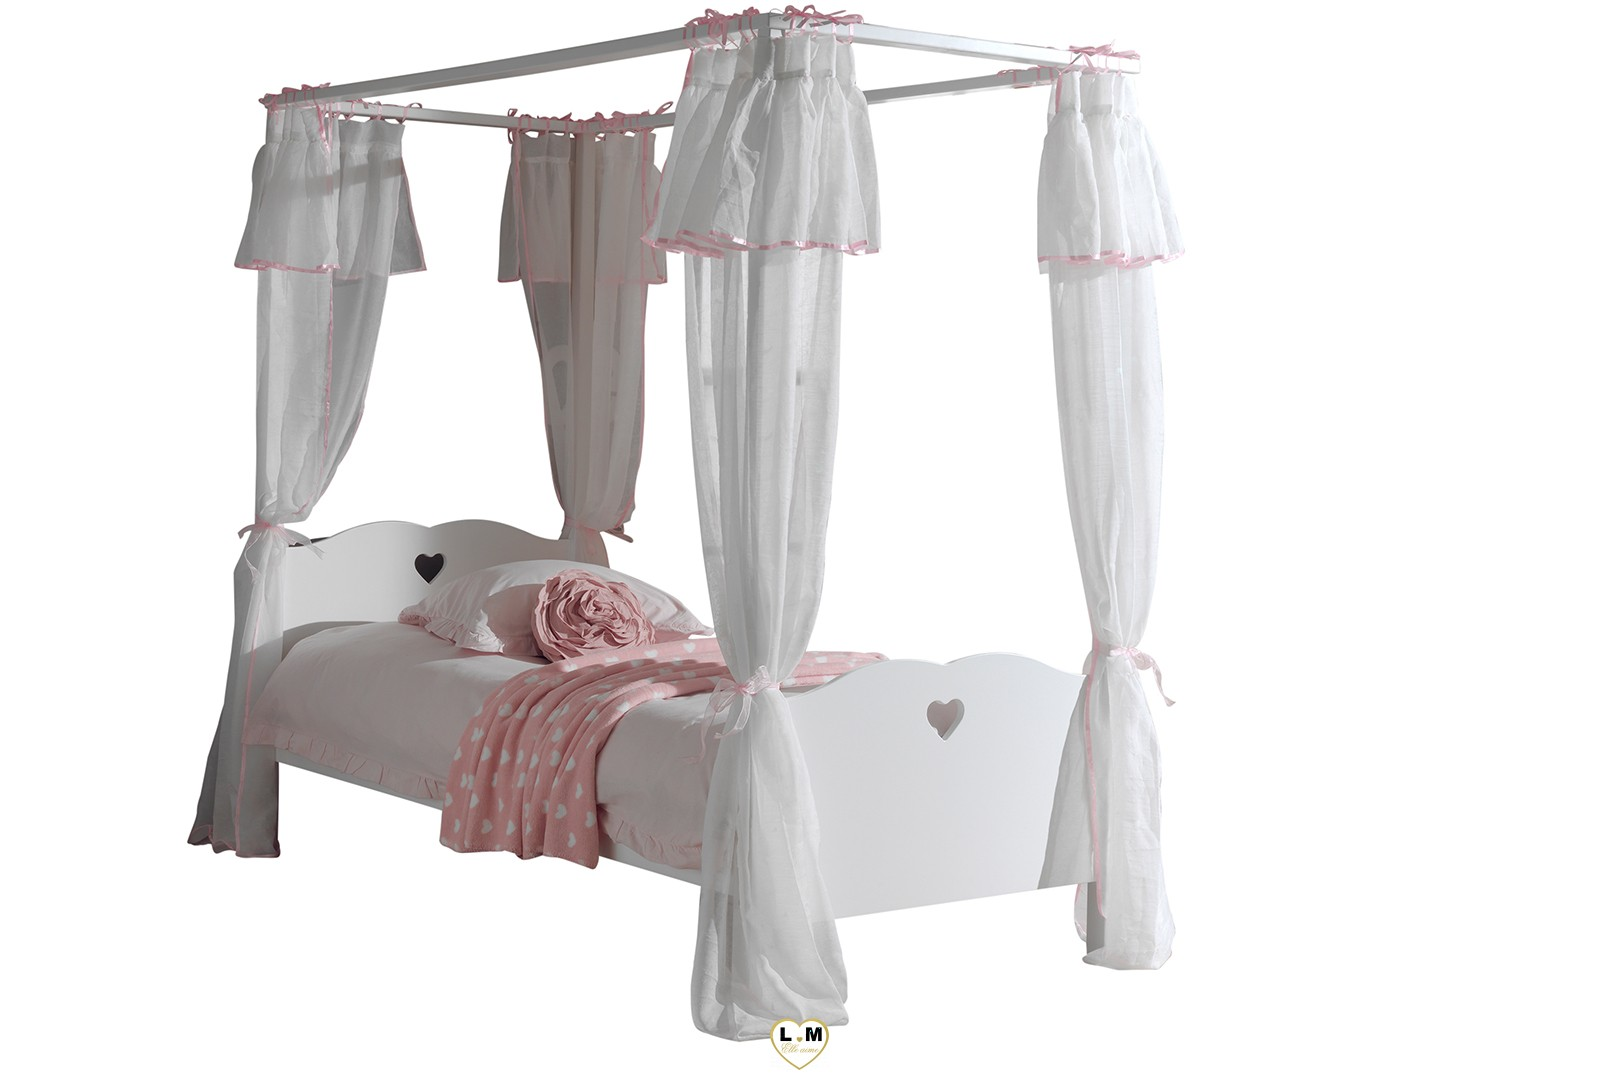 best amour laqu blanc mat chambre enfant rideaux voilage. Black Bedroom Furniture Sets. Home Design Ideas